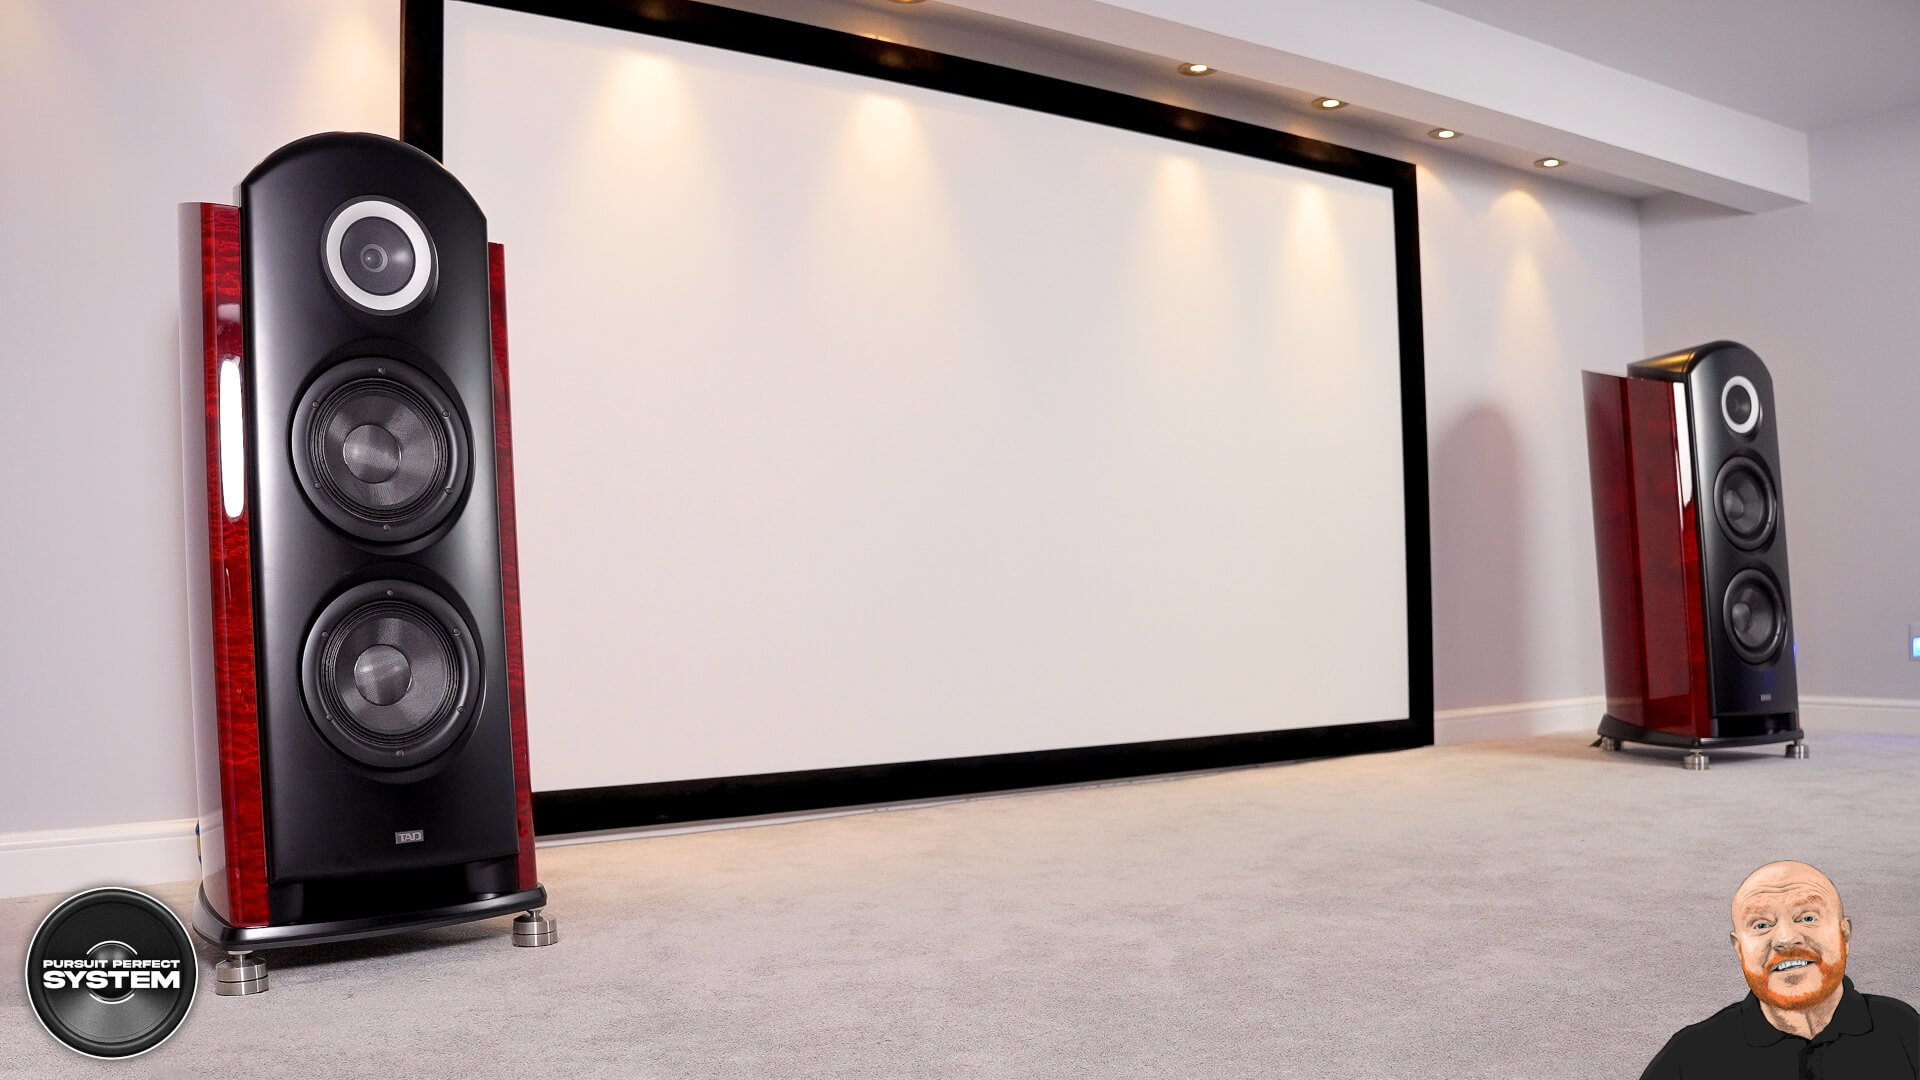 worlds best hifi system esoteric tad reference rel 6 pack subwoofers line array website small